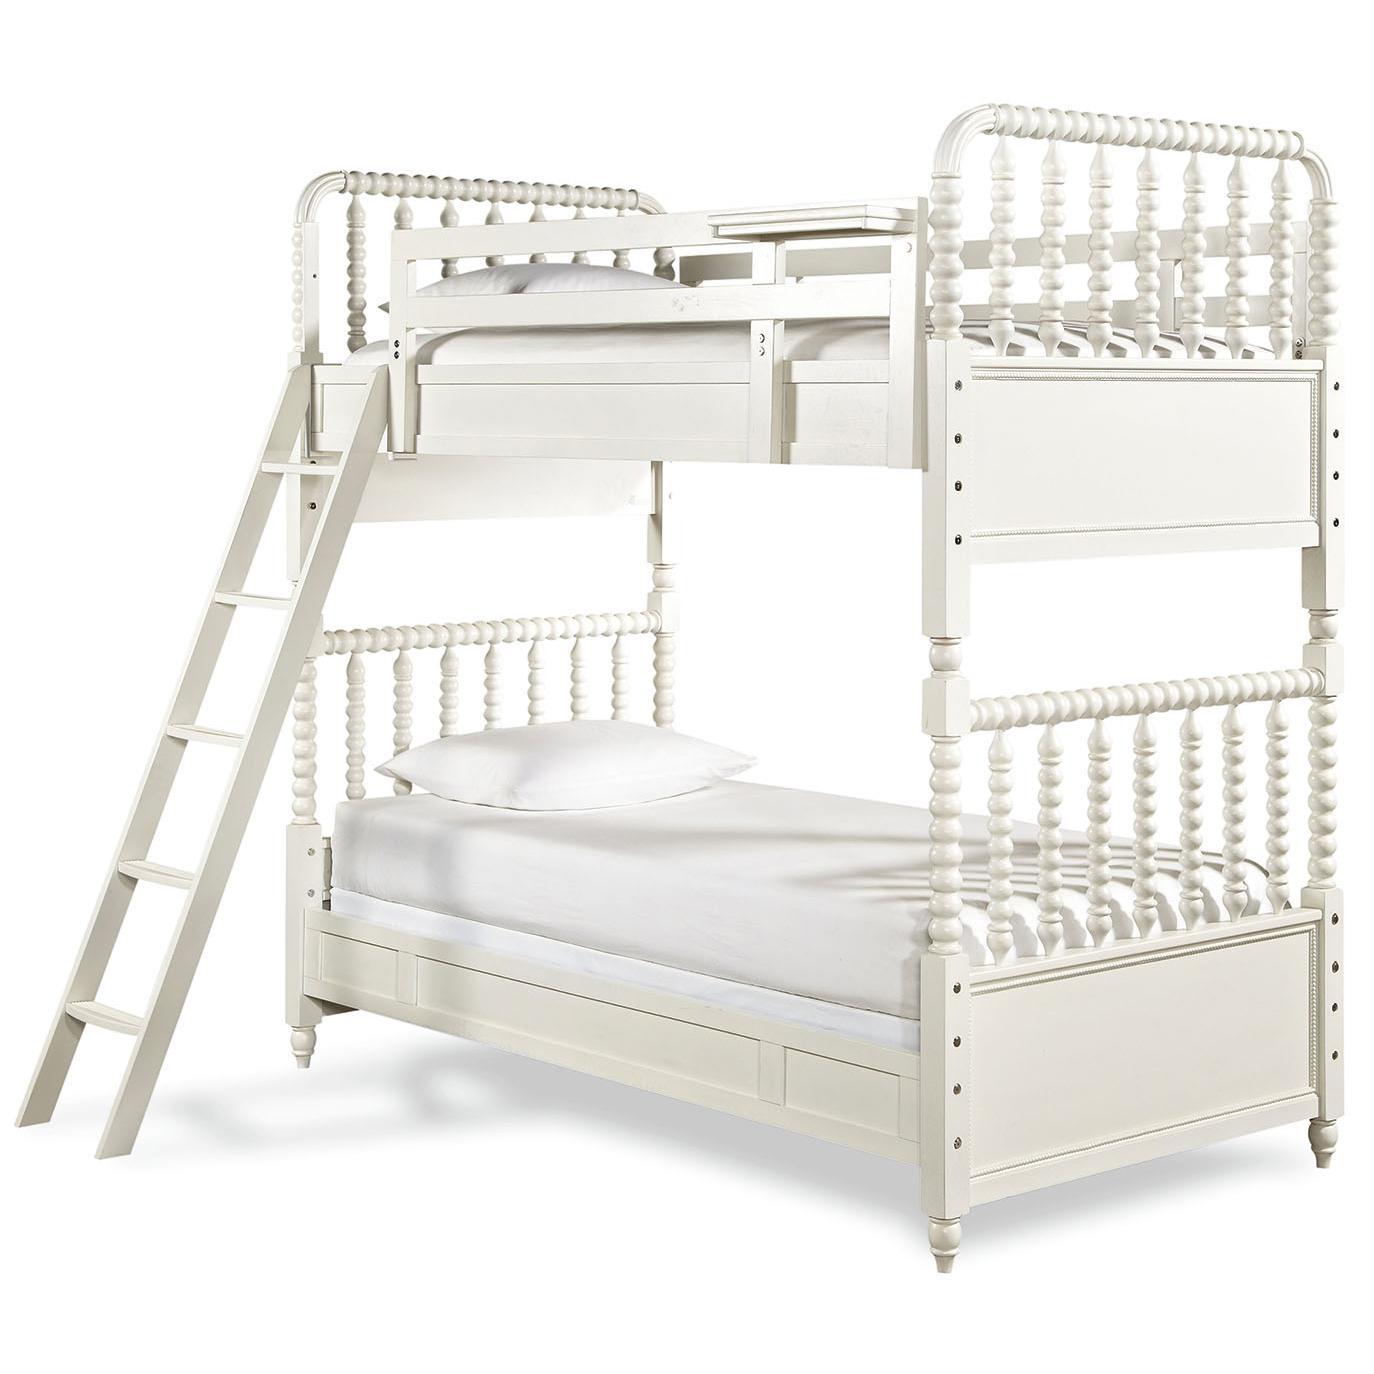 Smartstuff Bellamy Vintage Bunk Bed - Item Number: 330A530